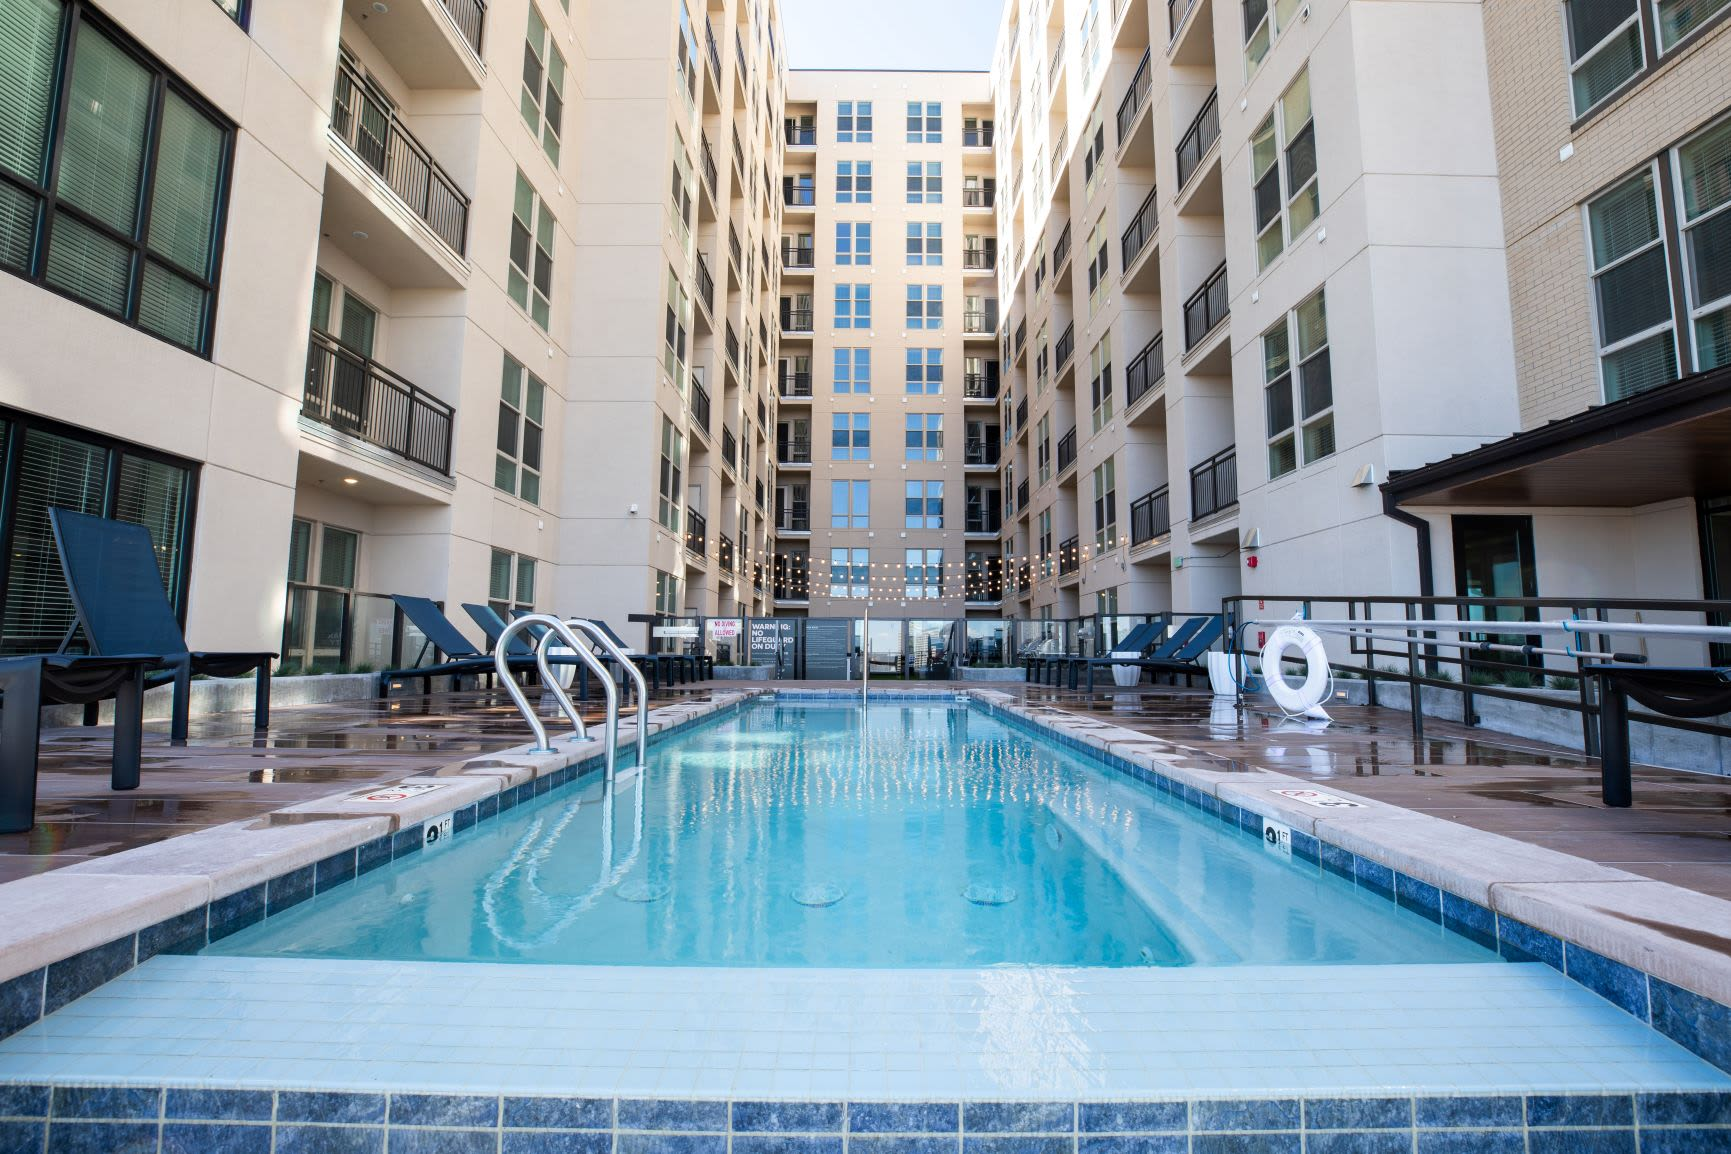 Laps pool at The Alcott in Downtown Denver, Colorado